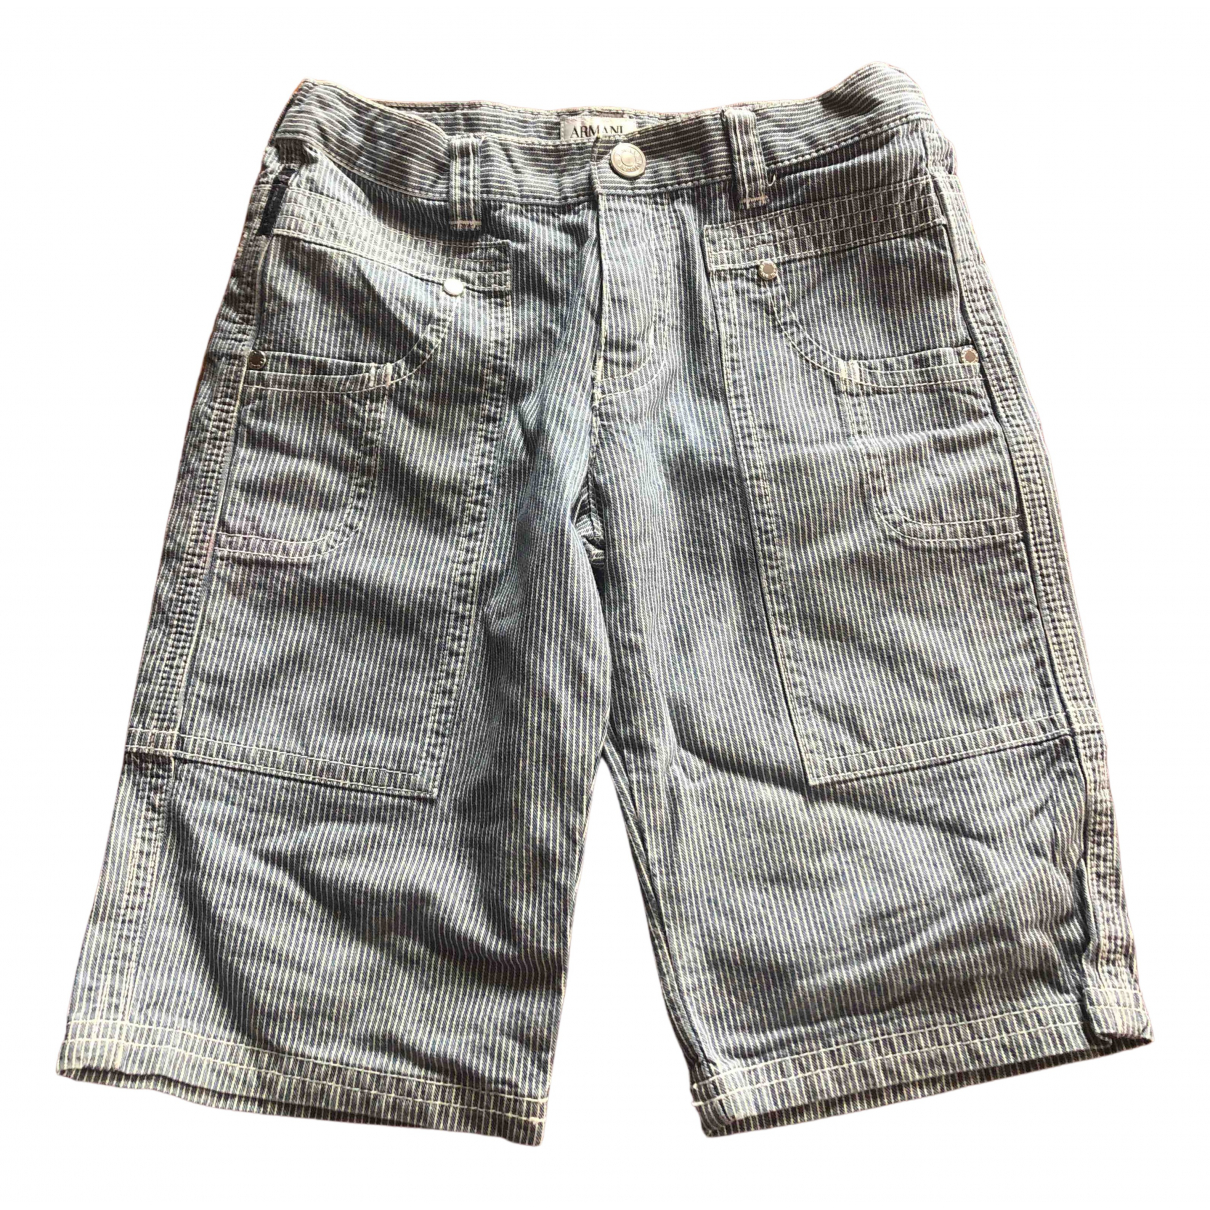 Armani Jeans N Blue Cotton Shorts for Kids 4 years - up to 102cm FR